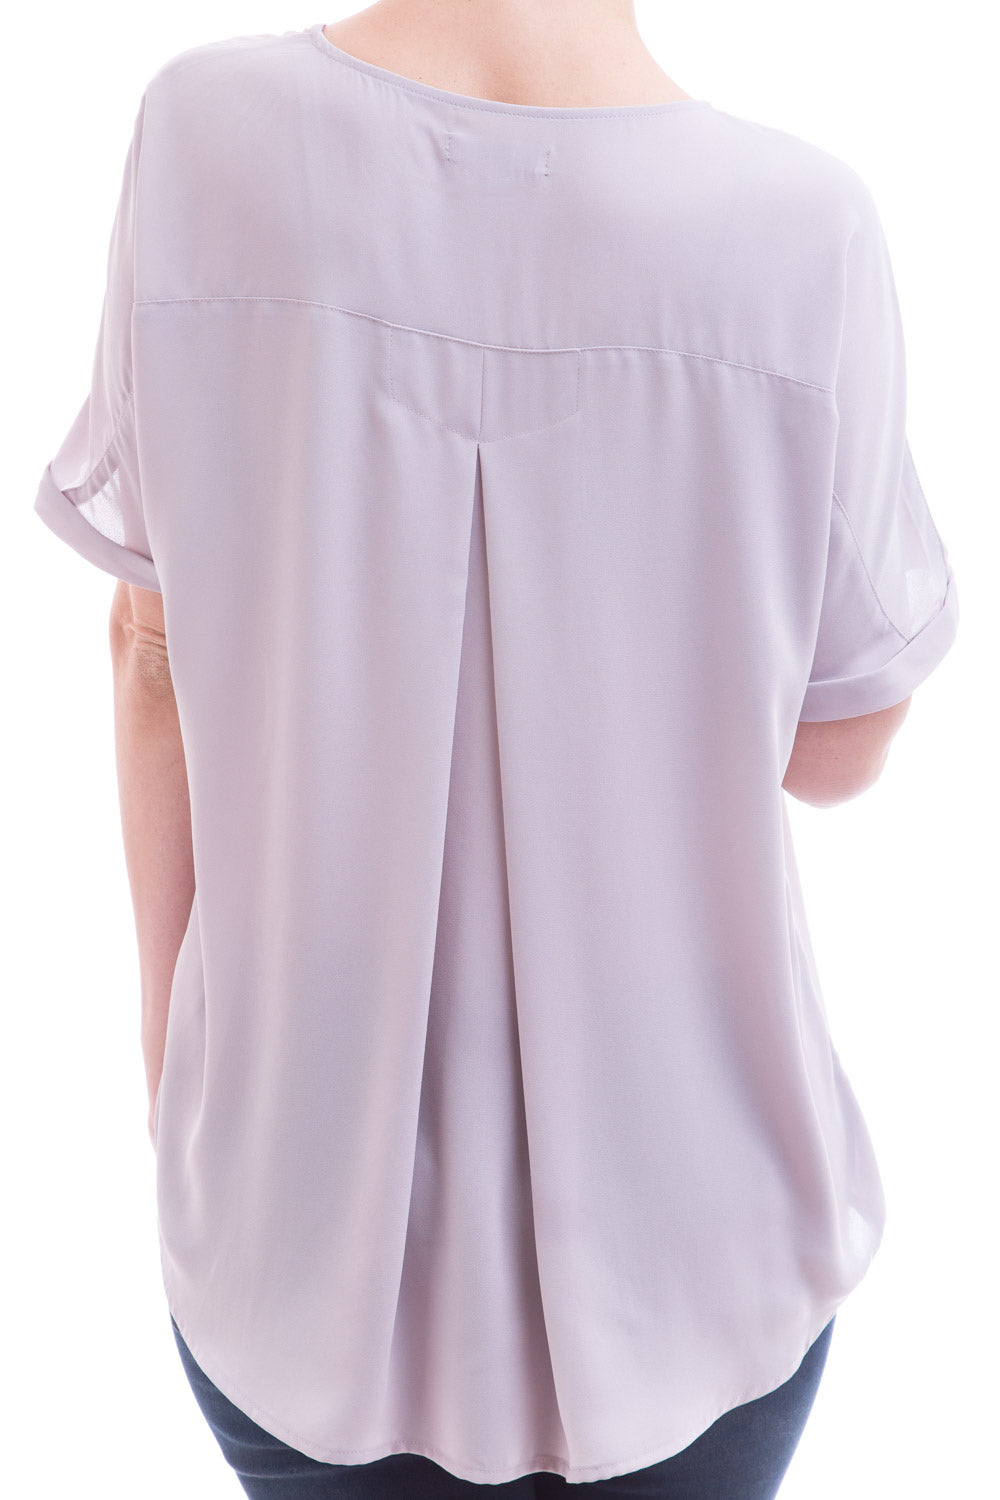 Type 2 Demure Lilac Gray Top